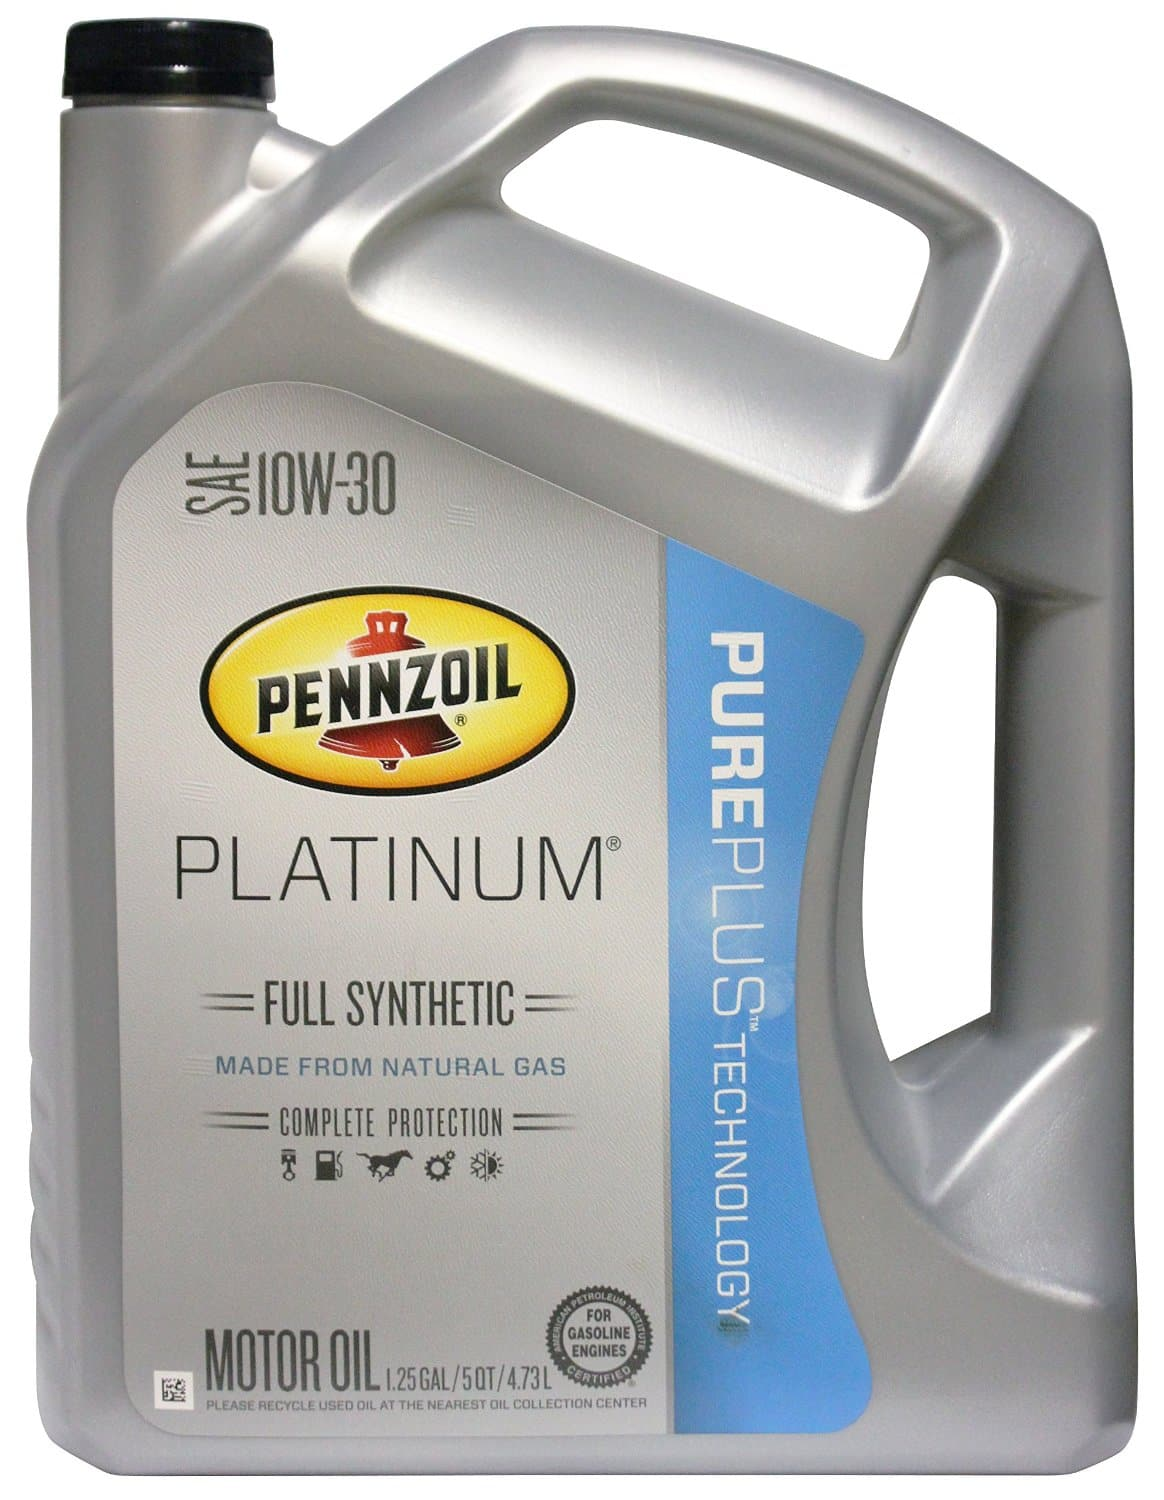 Prime Members: 5-Quart Pennzoil Platinum Full Synthetic Oil  From $9 after $10 Rebate + Free S&H